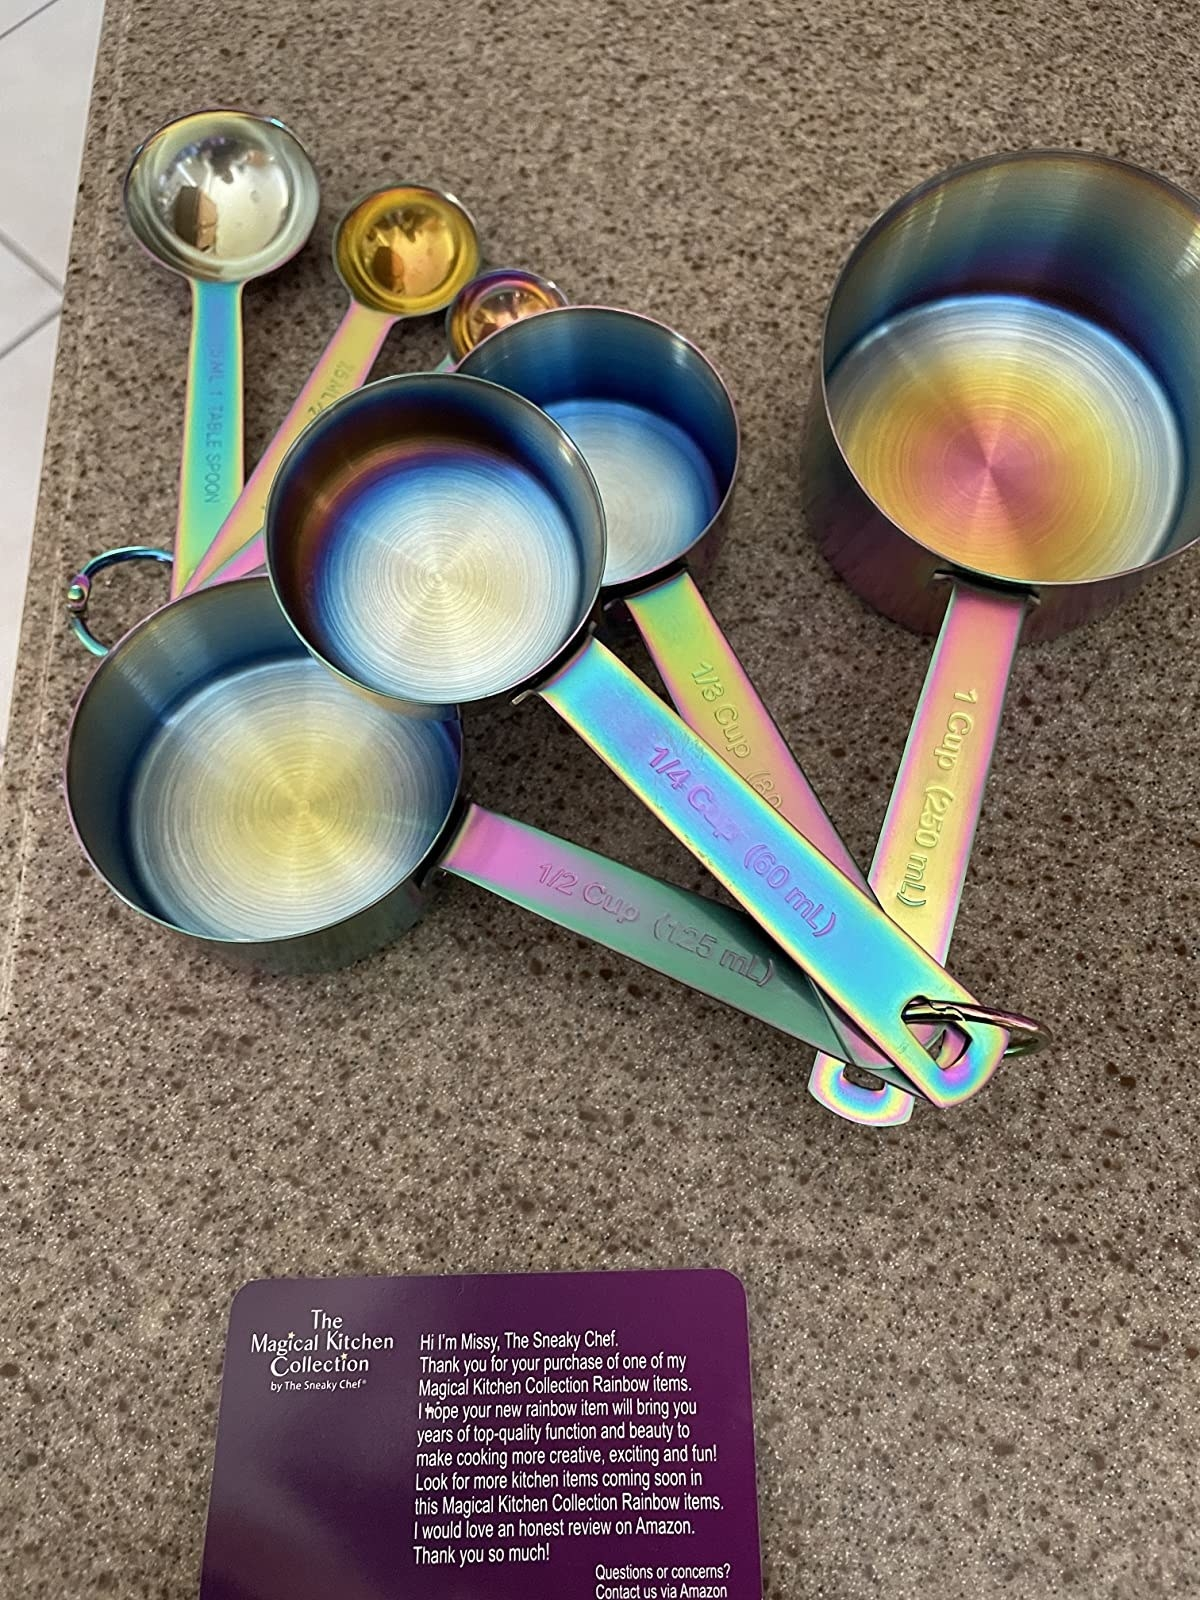 reviewer image of a set of iridescent measuring spoons